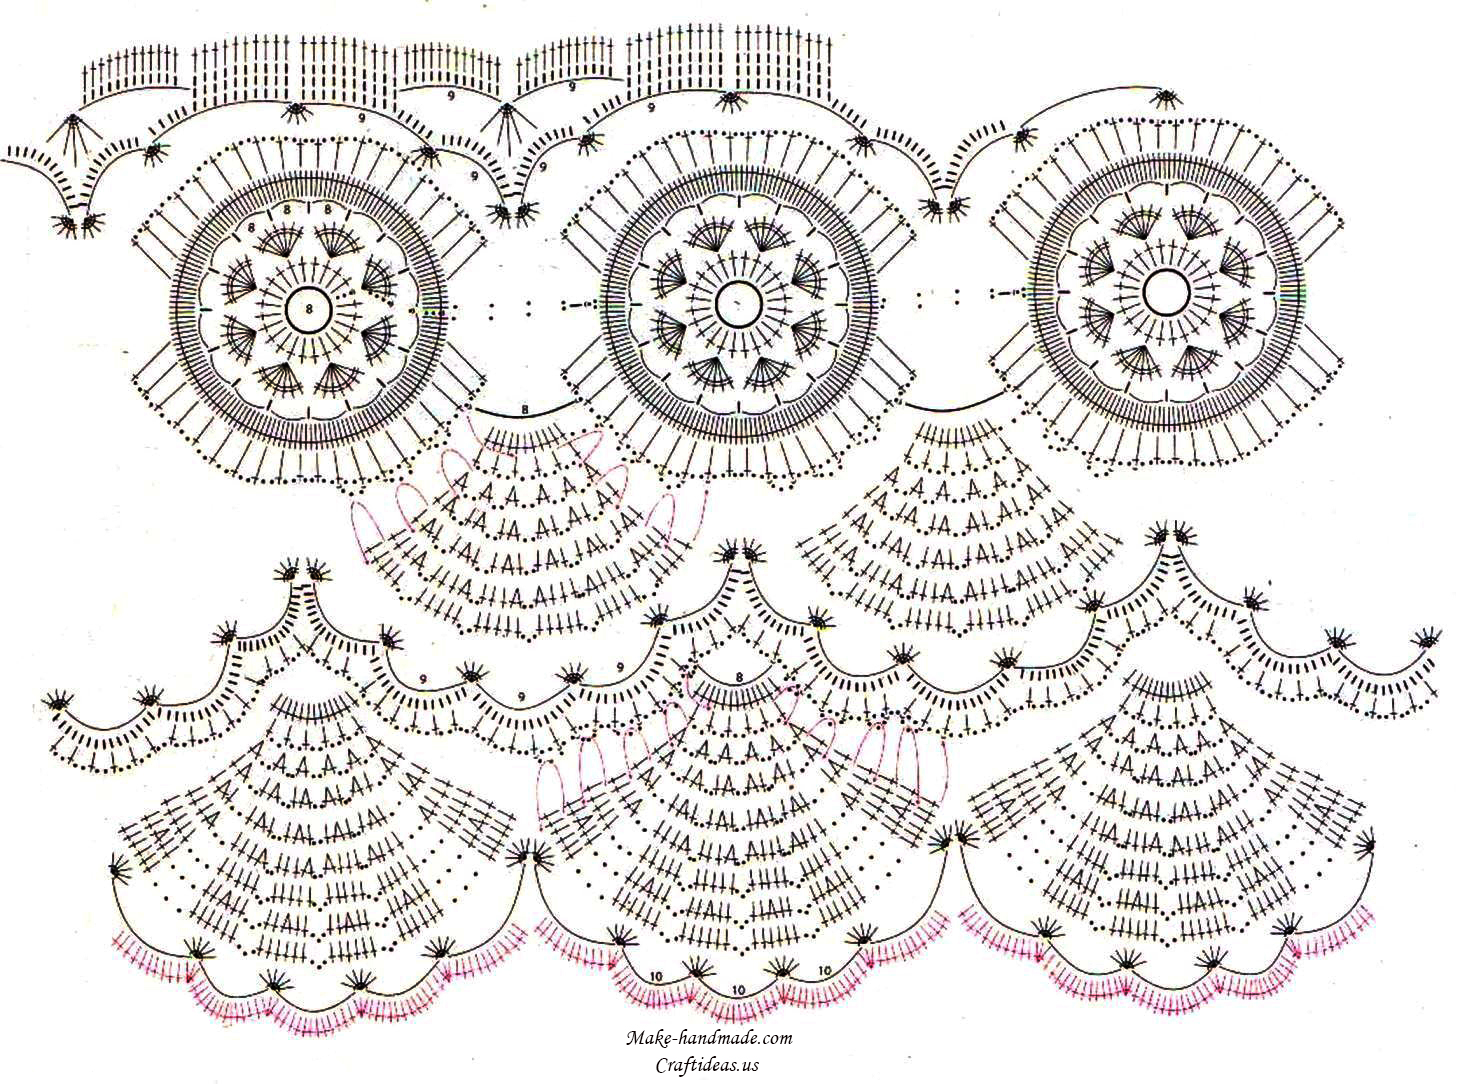 Crochet so beauty and charming dress for women craft ideas crochet charming dress for women diagram ccuart Choice Image